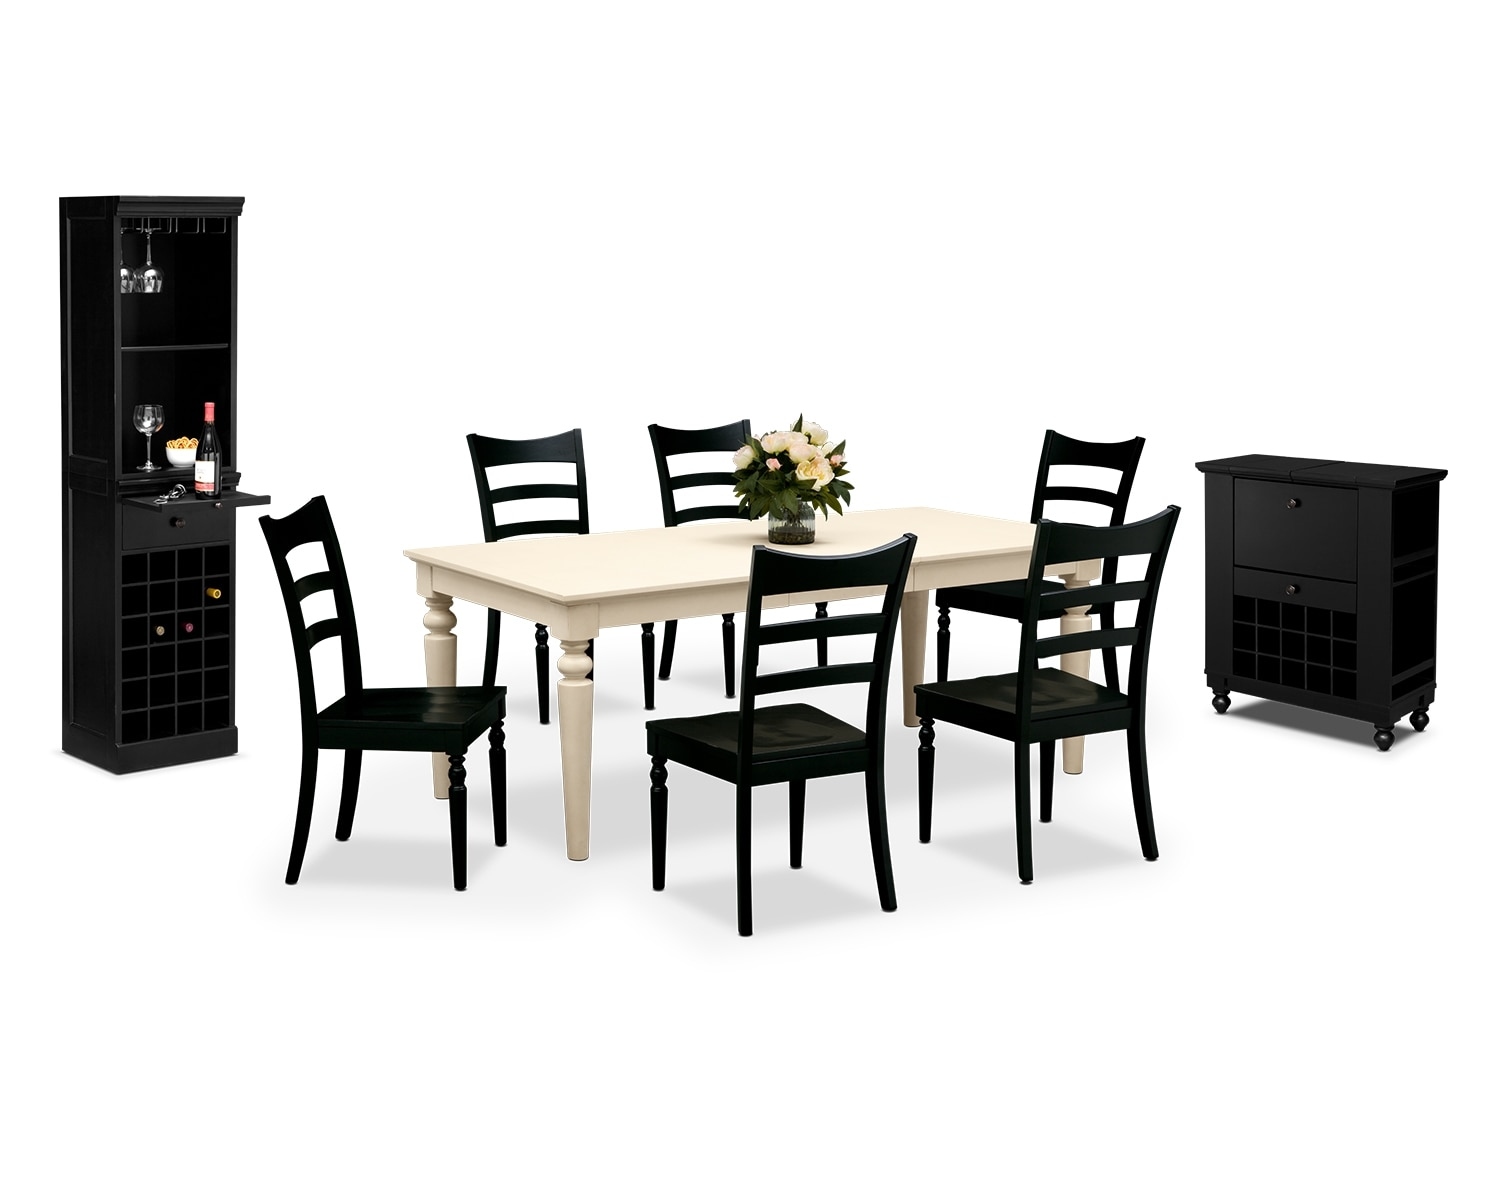 Dining Room Furniture - The Thompson Black Collection - Table